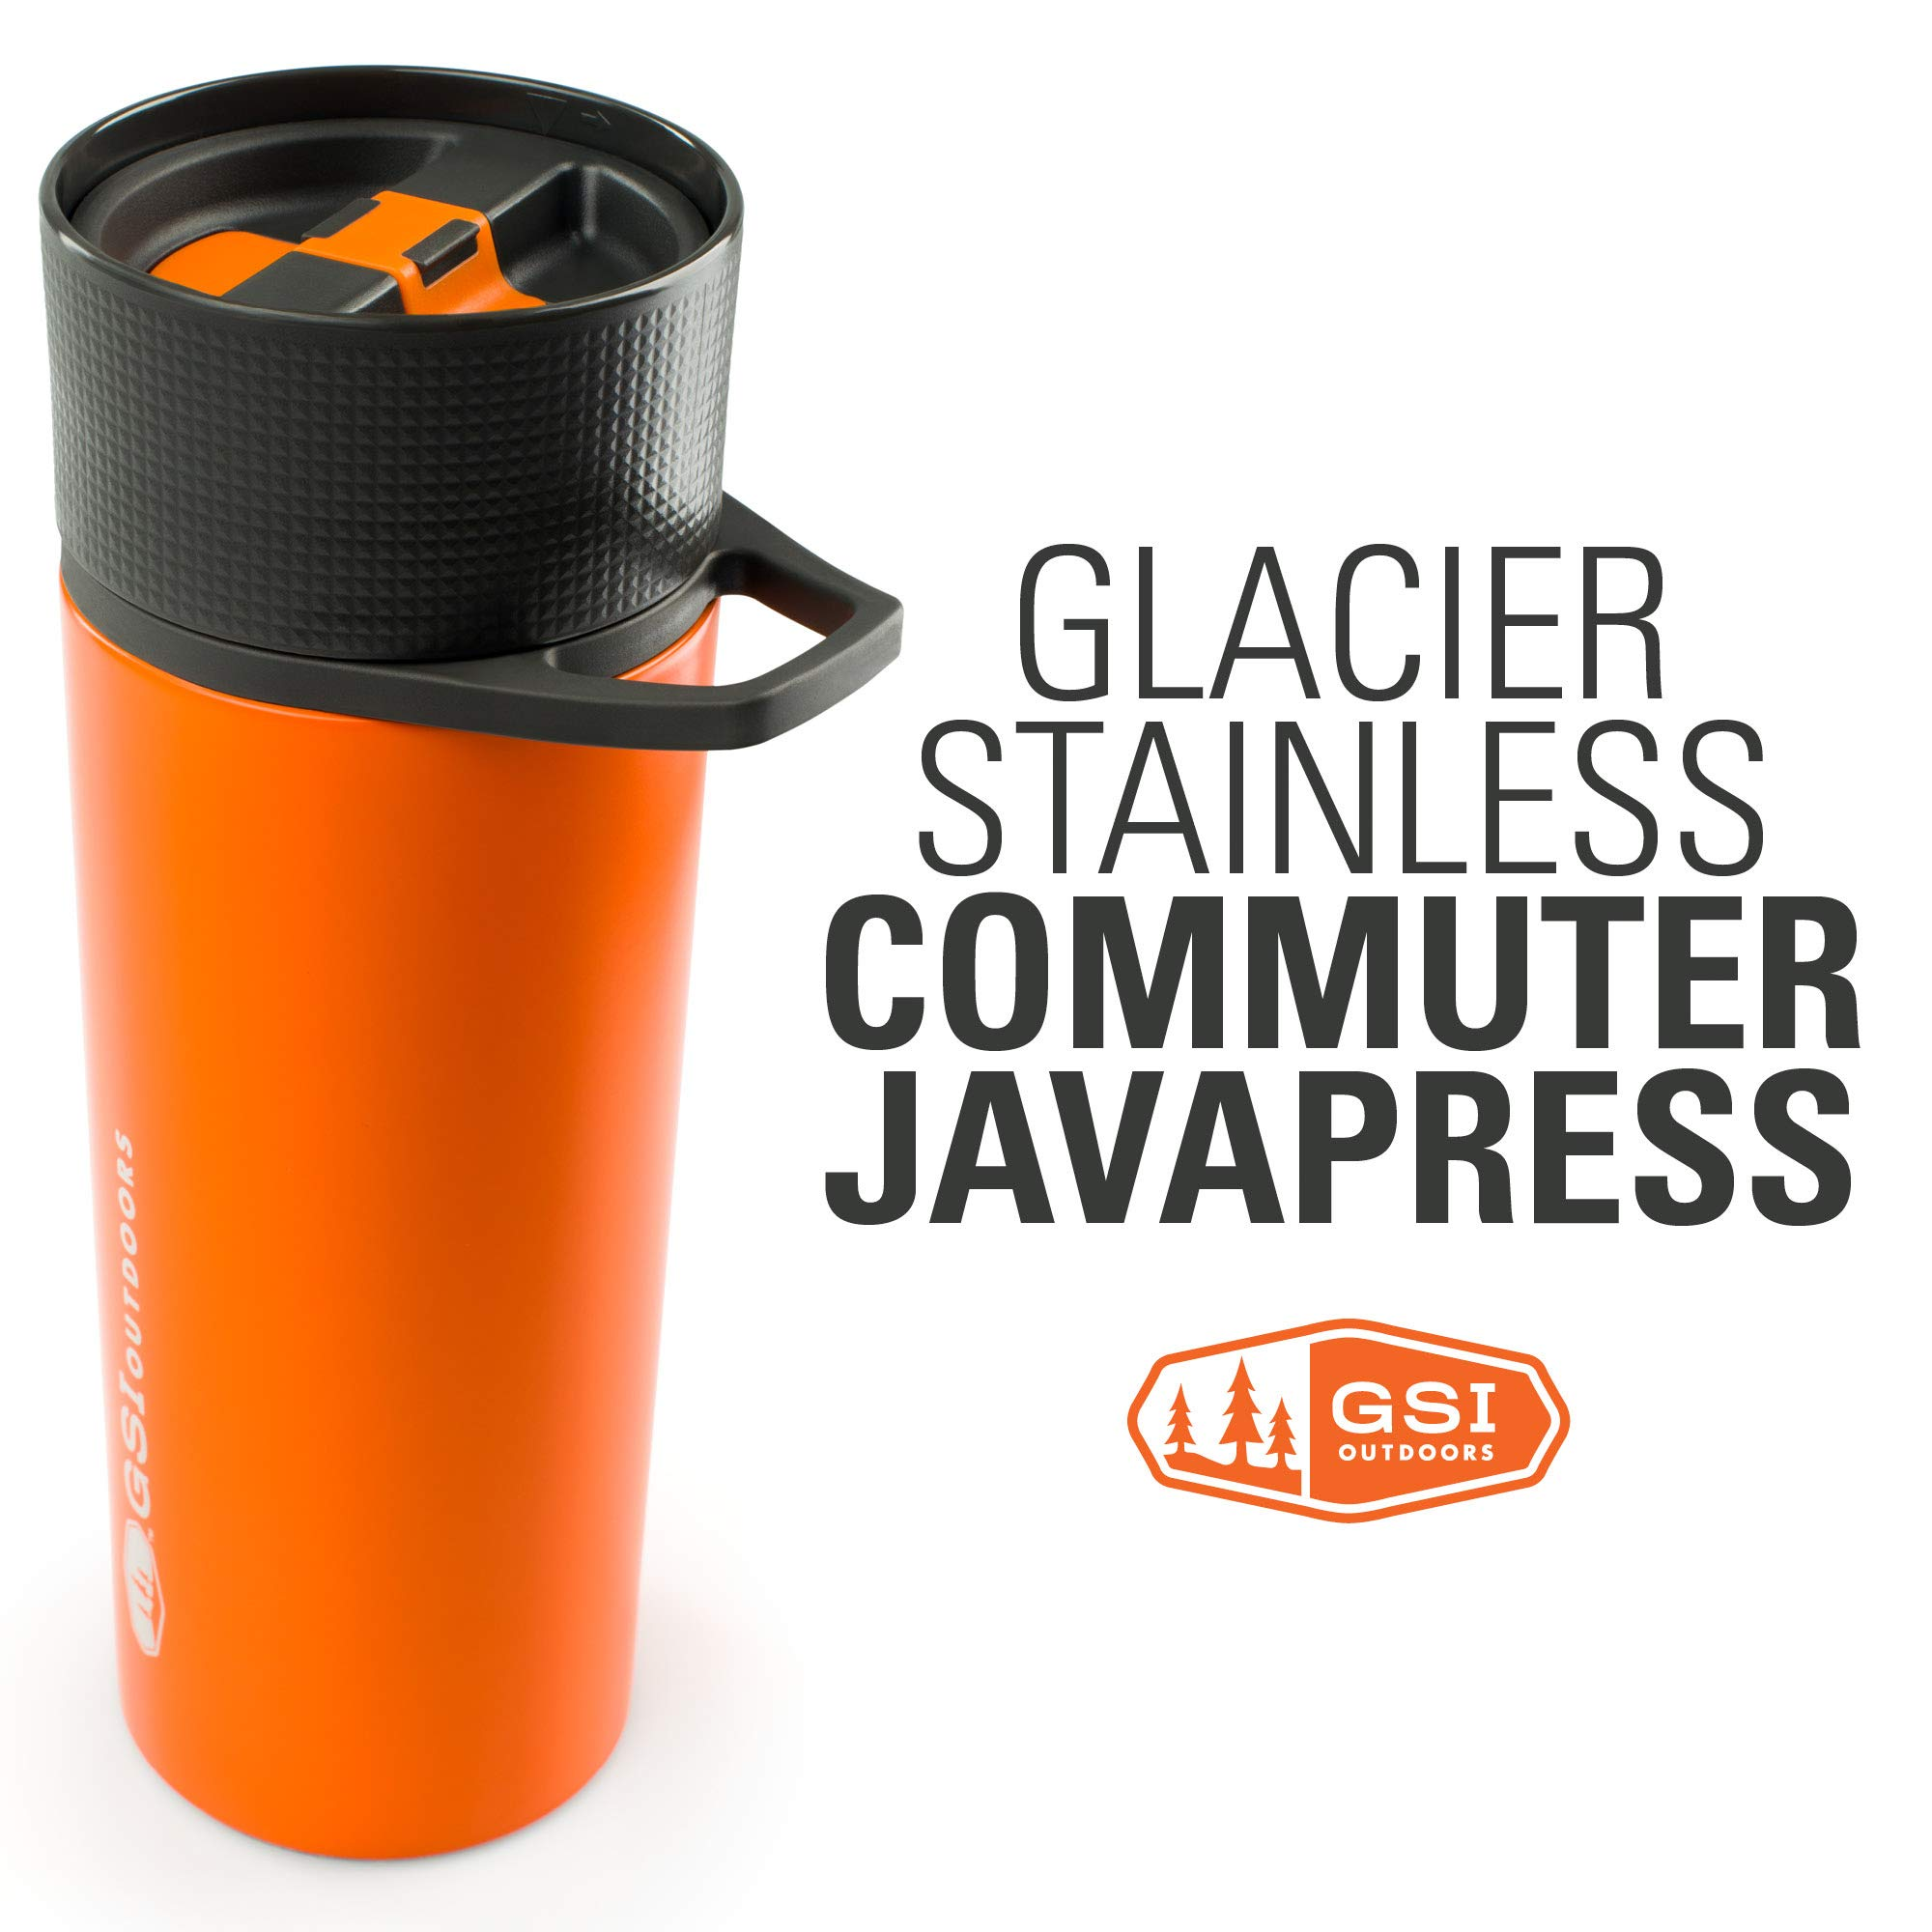 GSI Outdoors - Glacier Stainless Commuter JavaPress, French Press Coffee Mug, Superior Backcountry Cookware Since 1985, Orange by GSI Outdoors